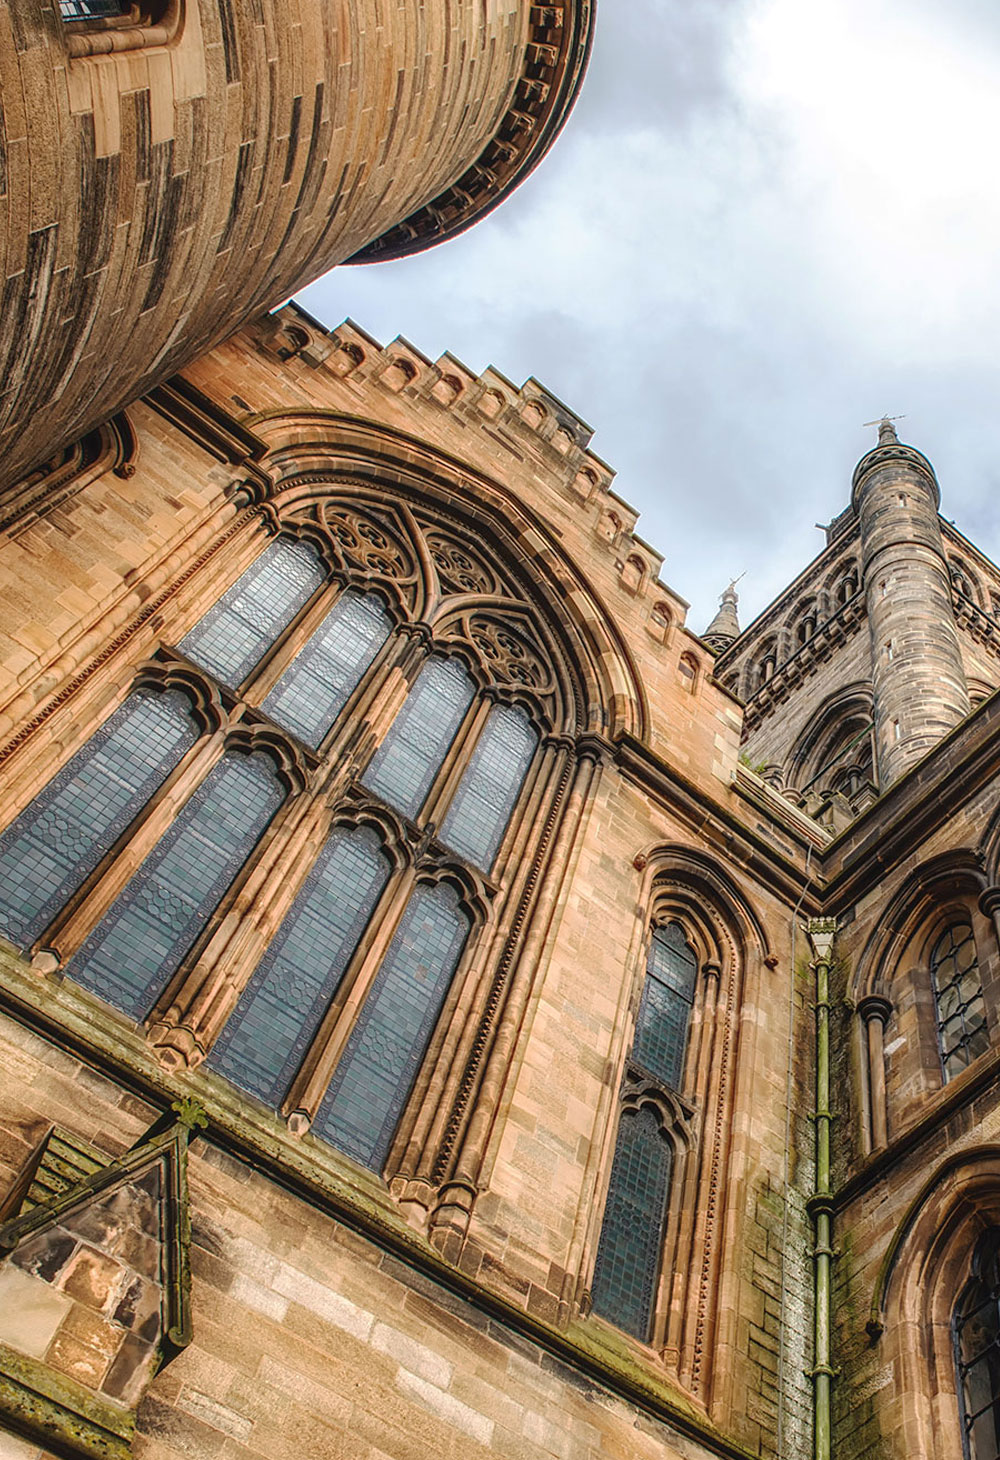 View looking up at exterior of the Main Building of the University of Glasgow, Scotland